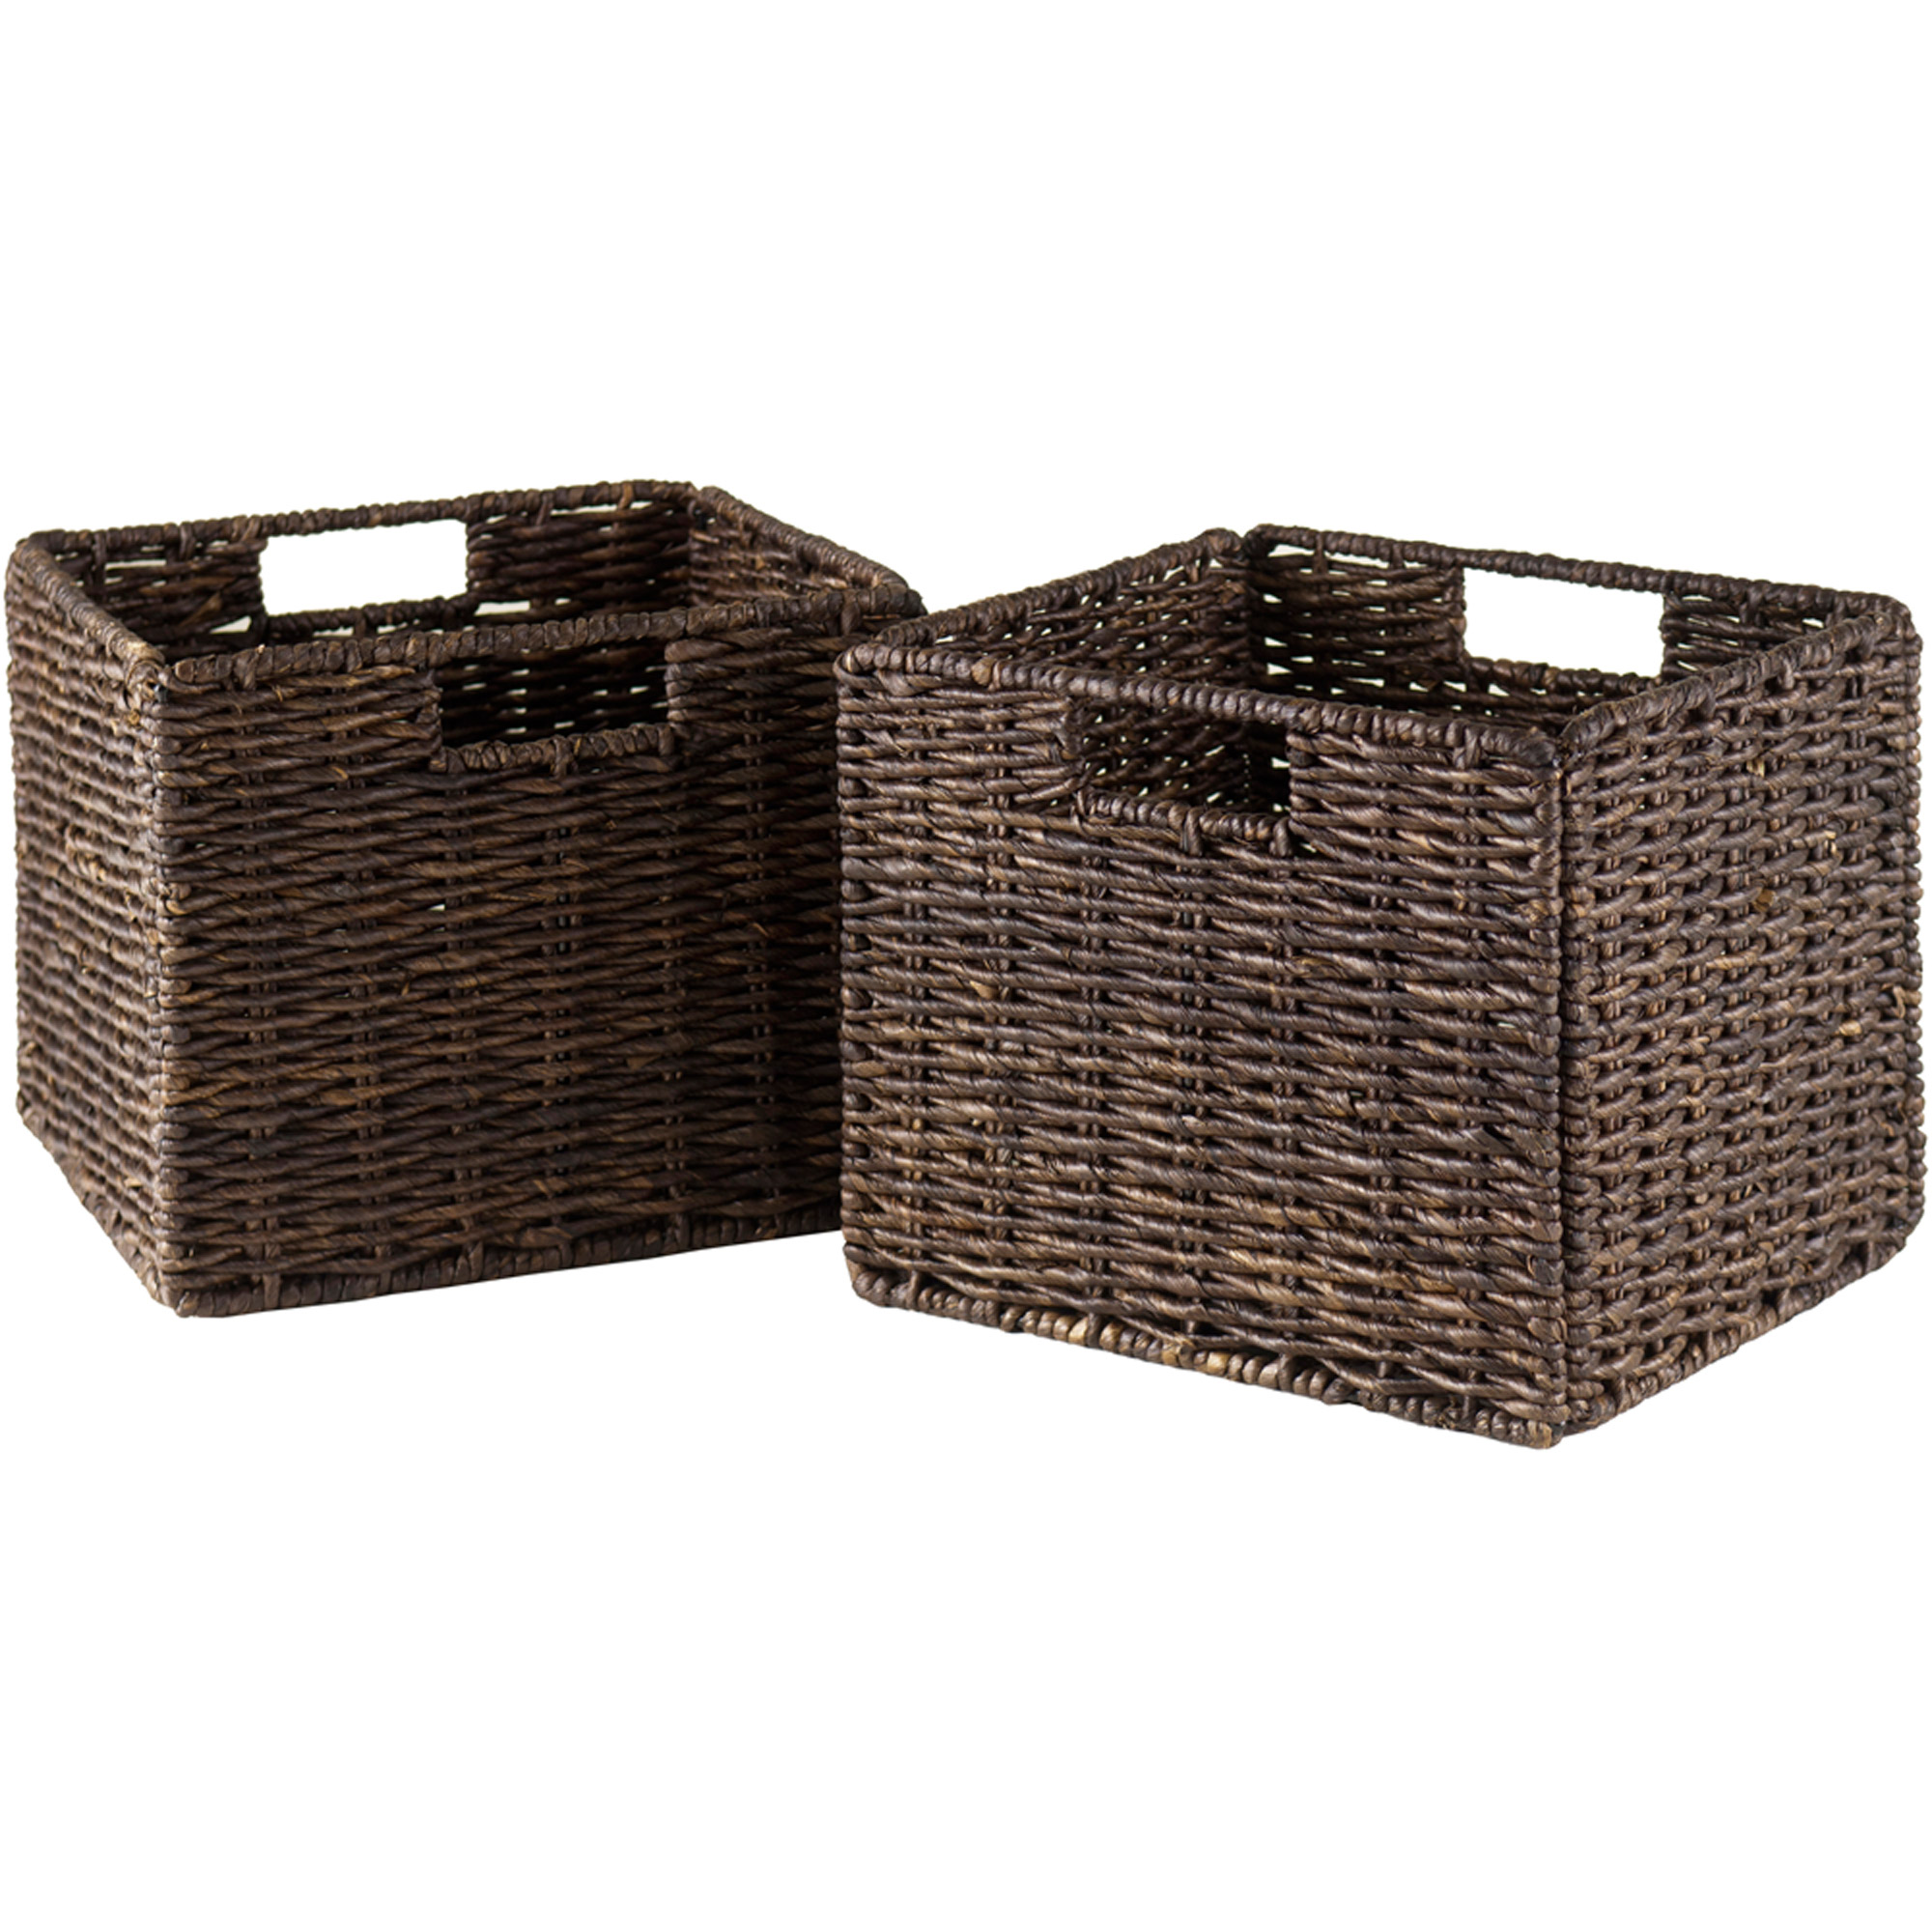 Granville Foldable Corn Husk Baskets, Set of 2, 3 or 4